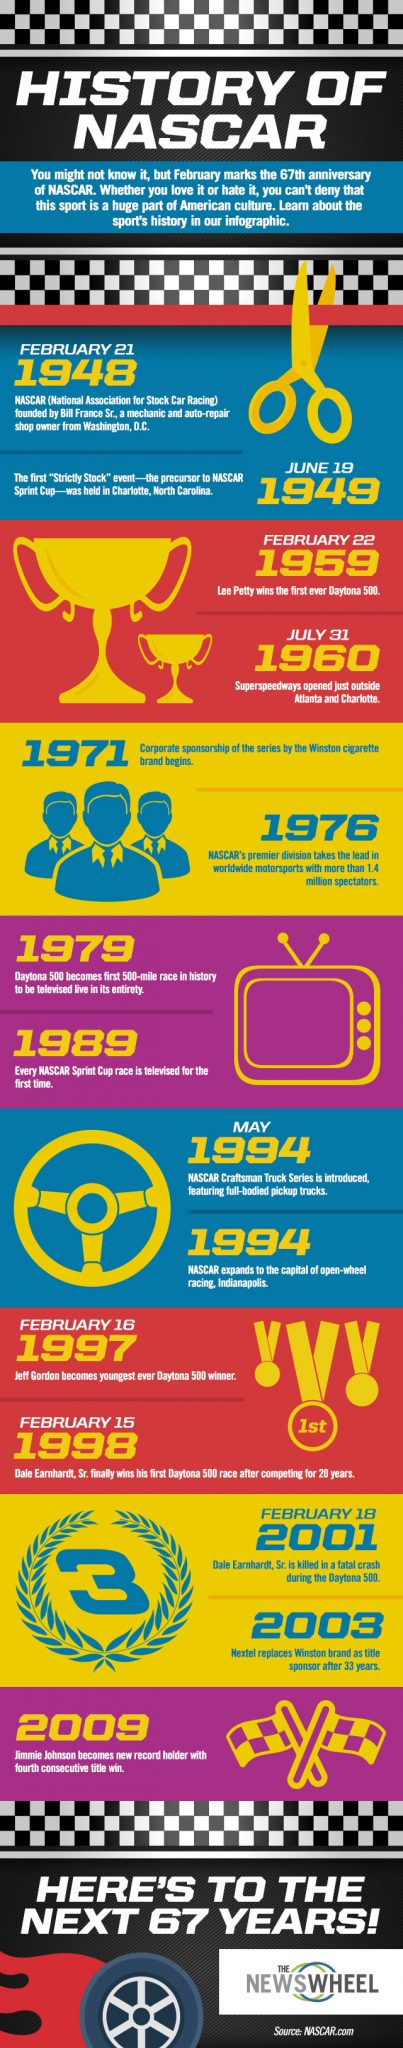 History of NASCAR infographic